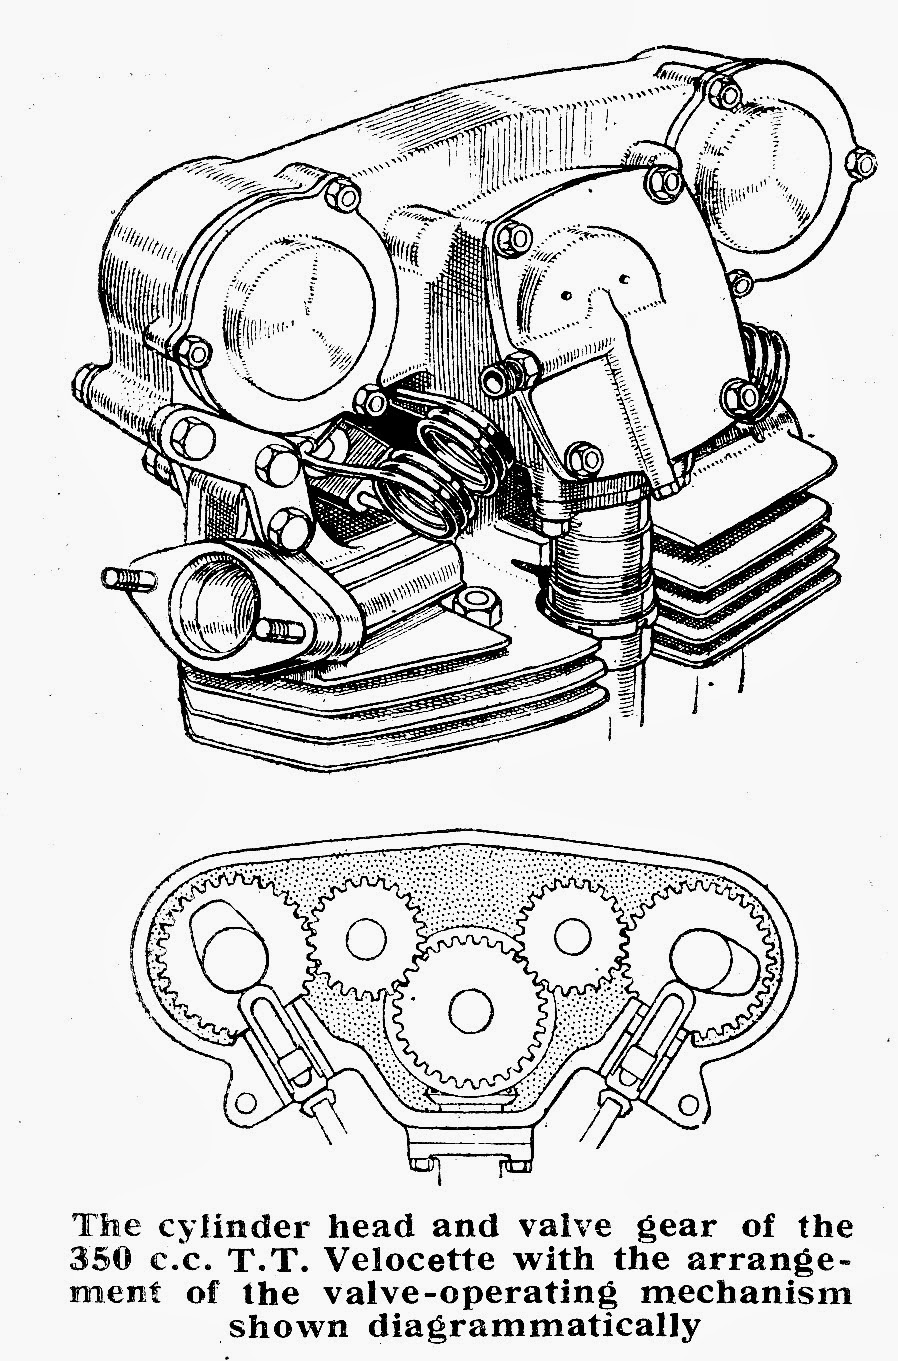 Outstanding mazda 326 engine diagram pictures best image